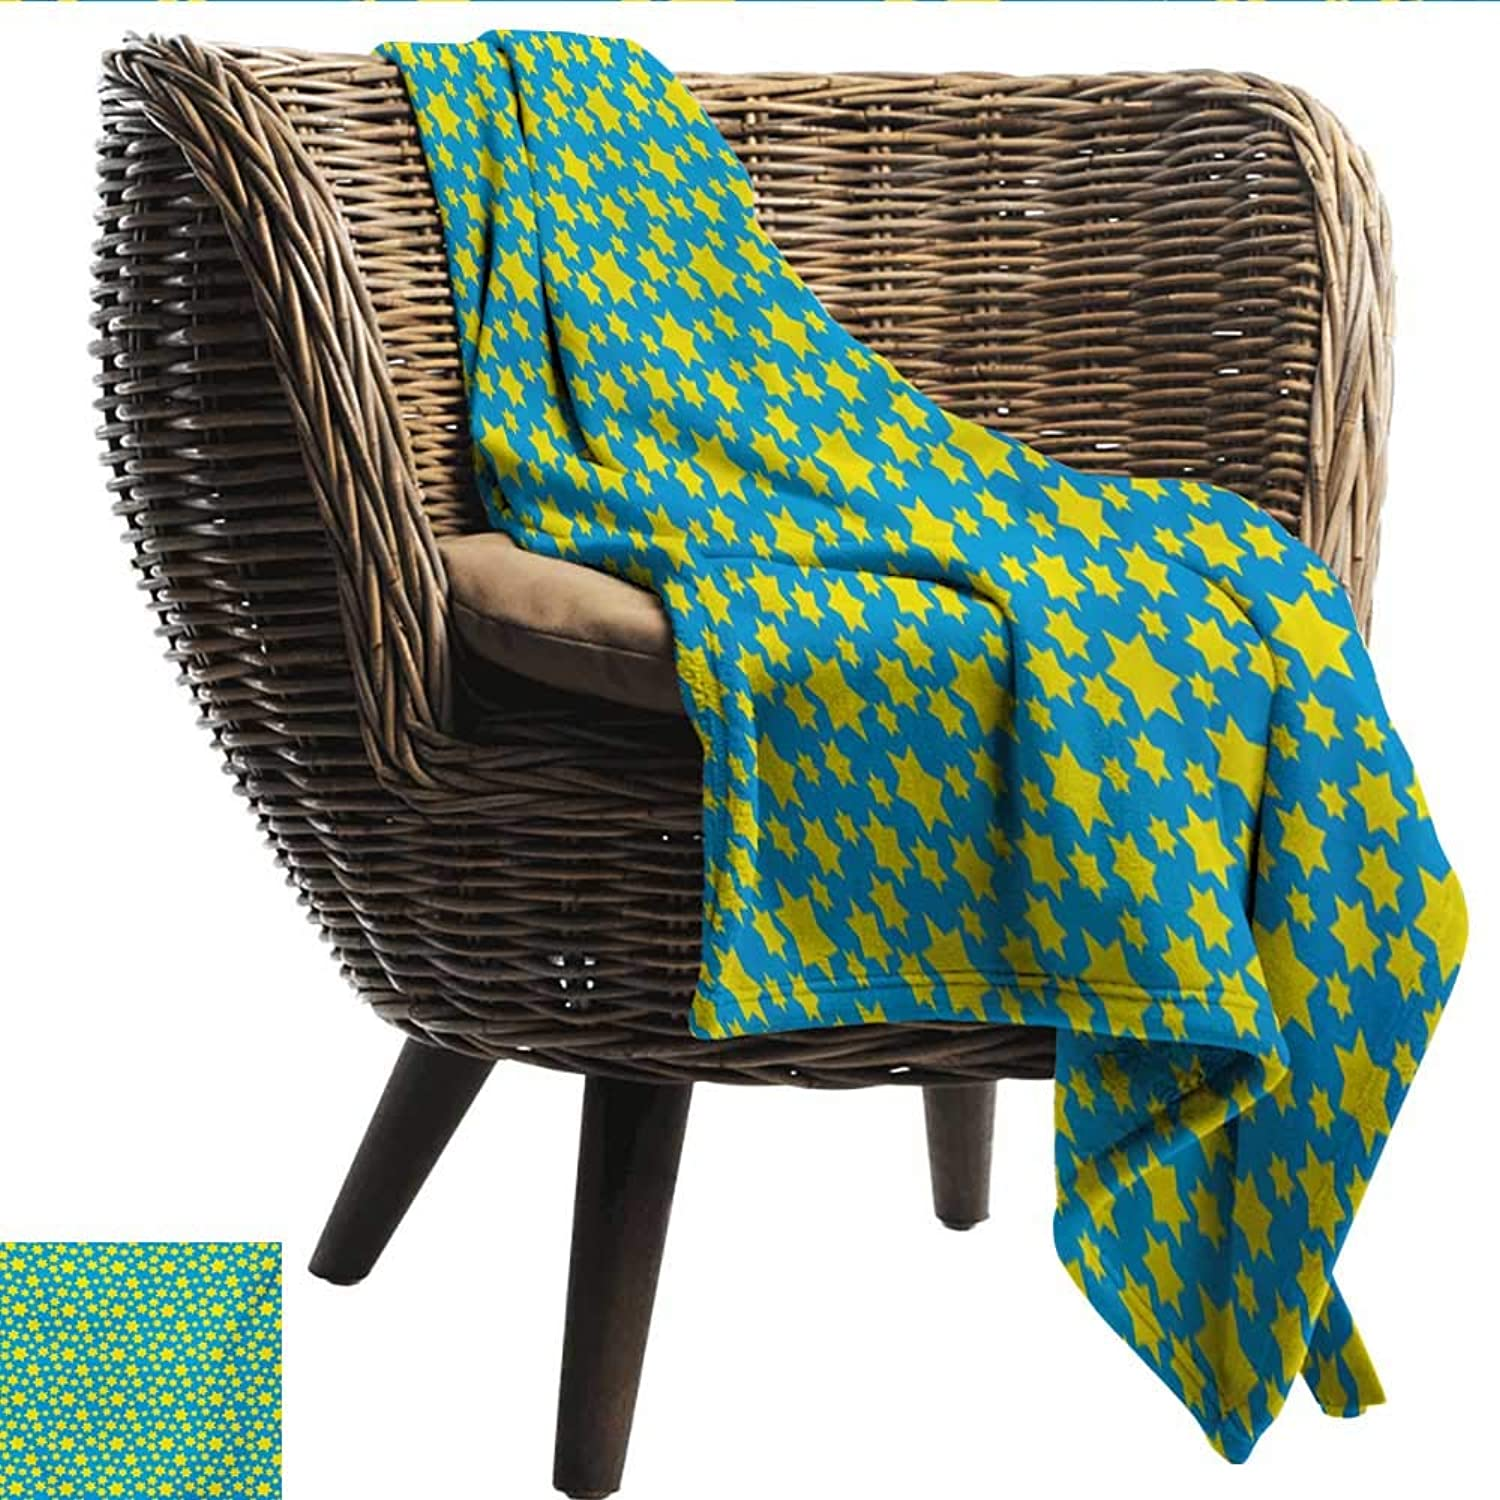 Anshesix Throw Blanket Yellow and bluee Stars Motif in Various Size Spiritual with Kids Effects Cute Design Super Soft W60 xL51 Sofa,Picnic,Camping,Beach,Everyday use